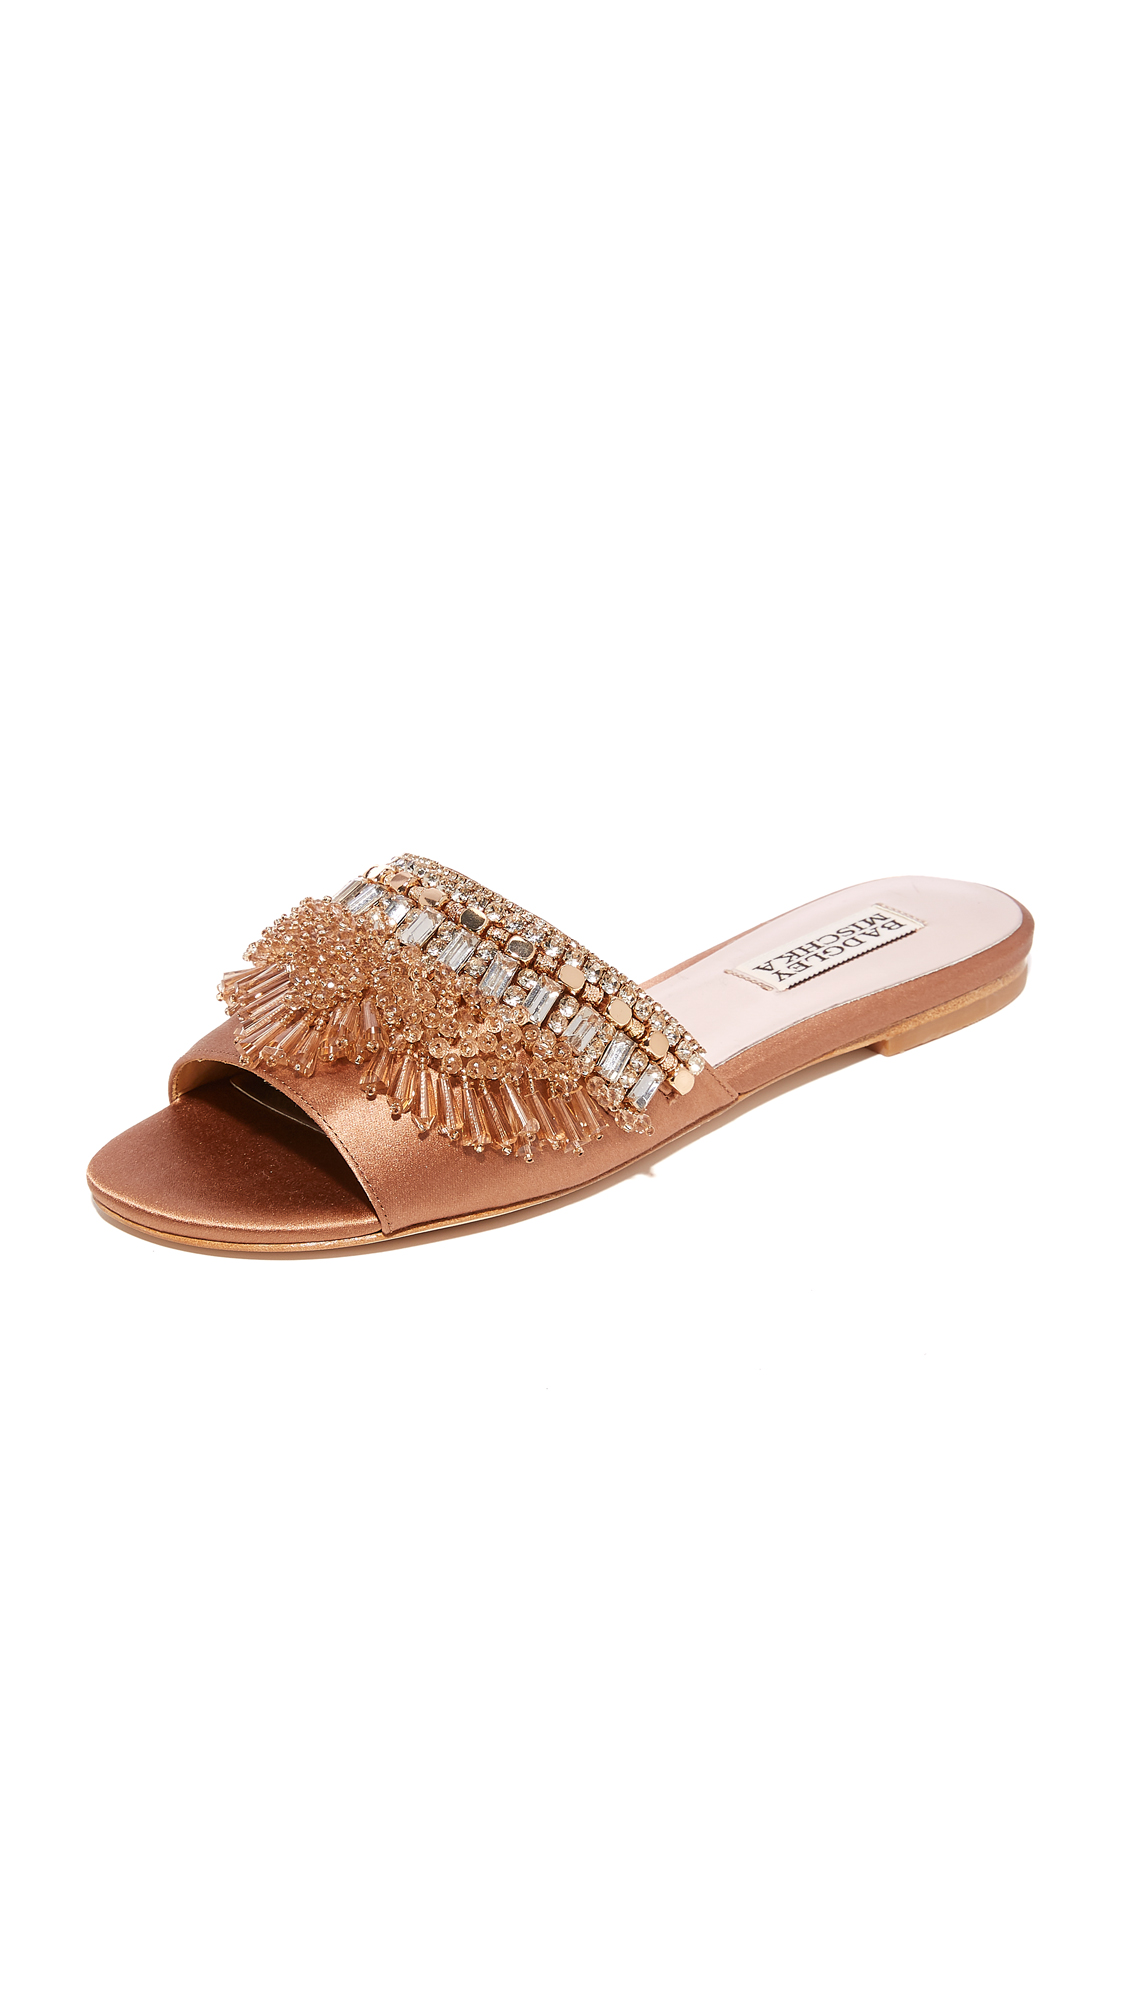 Badgley Mischka Kassandra Embellished Slides - Dark Nude